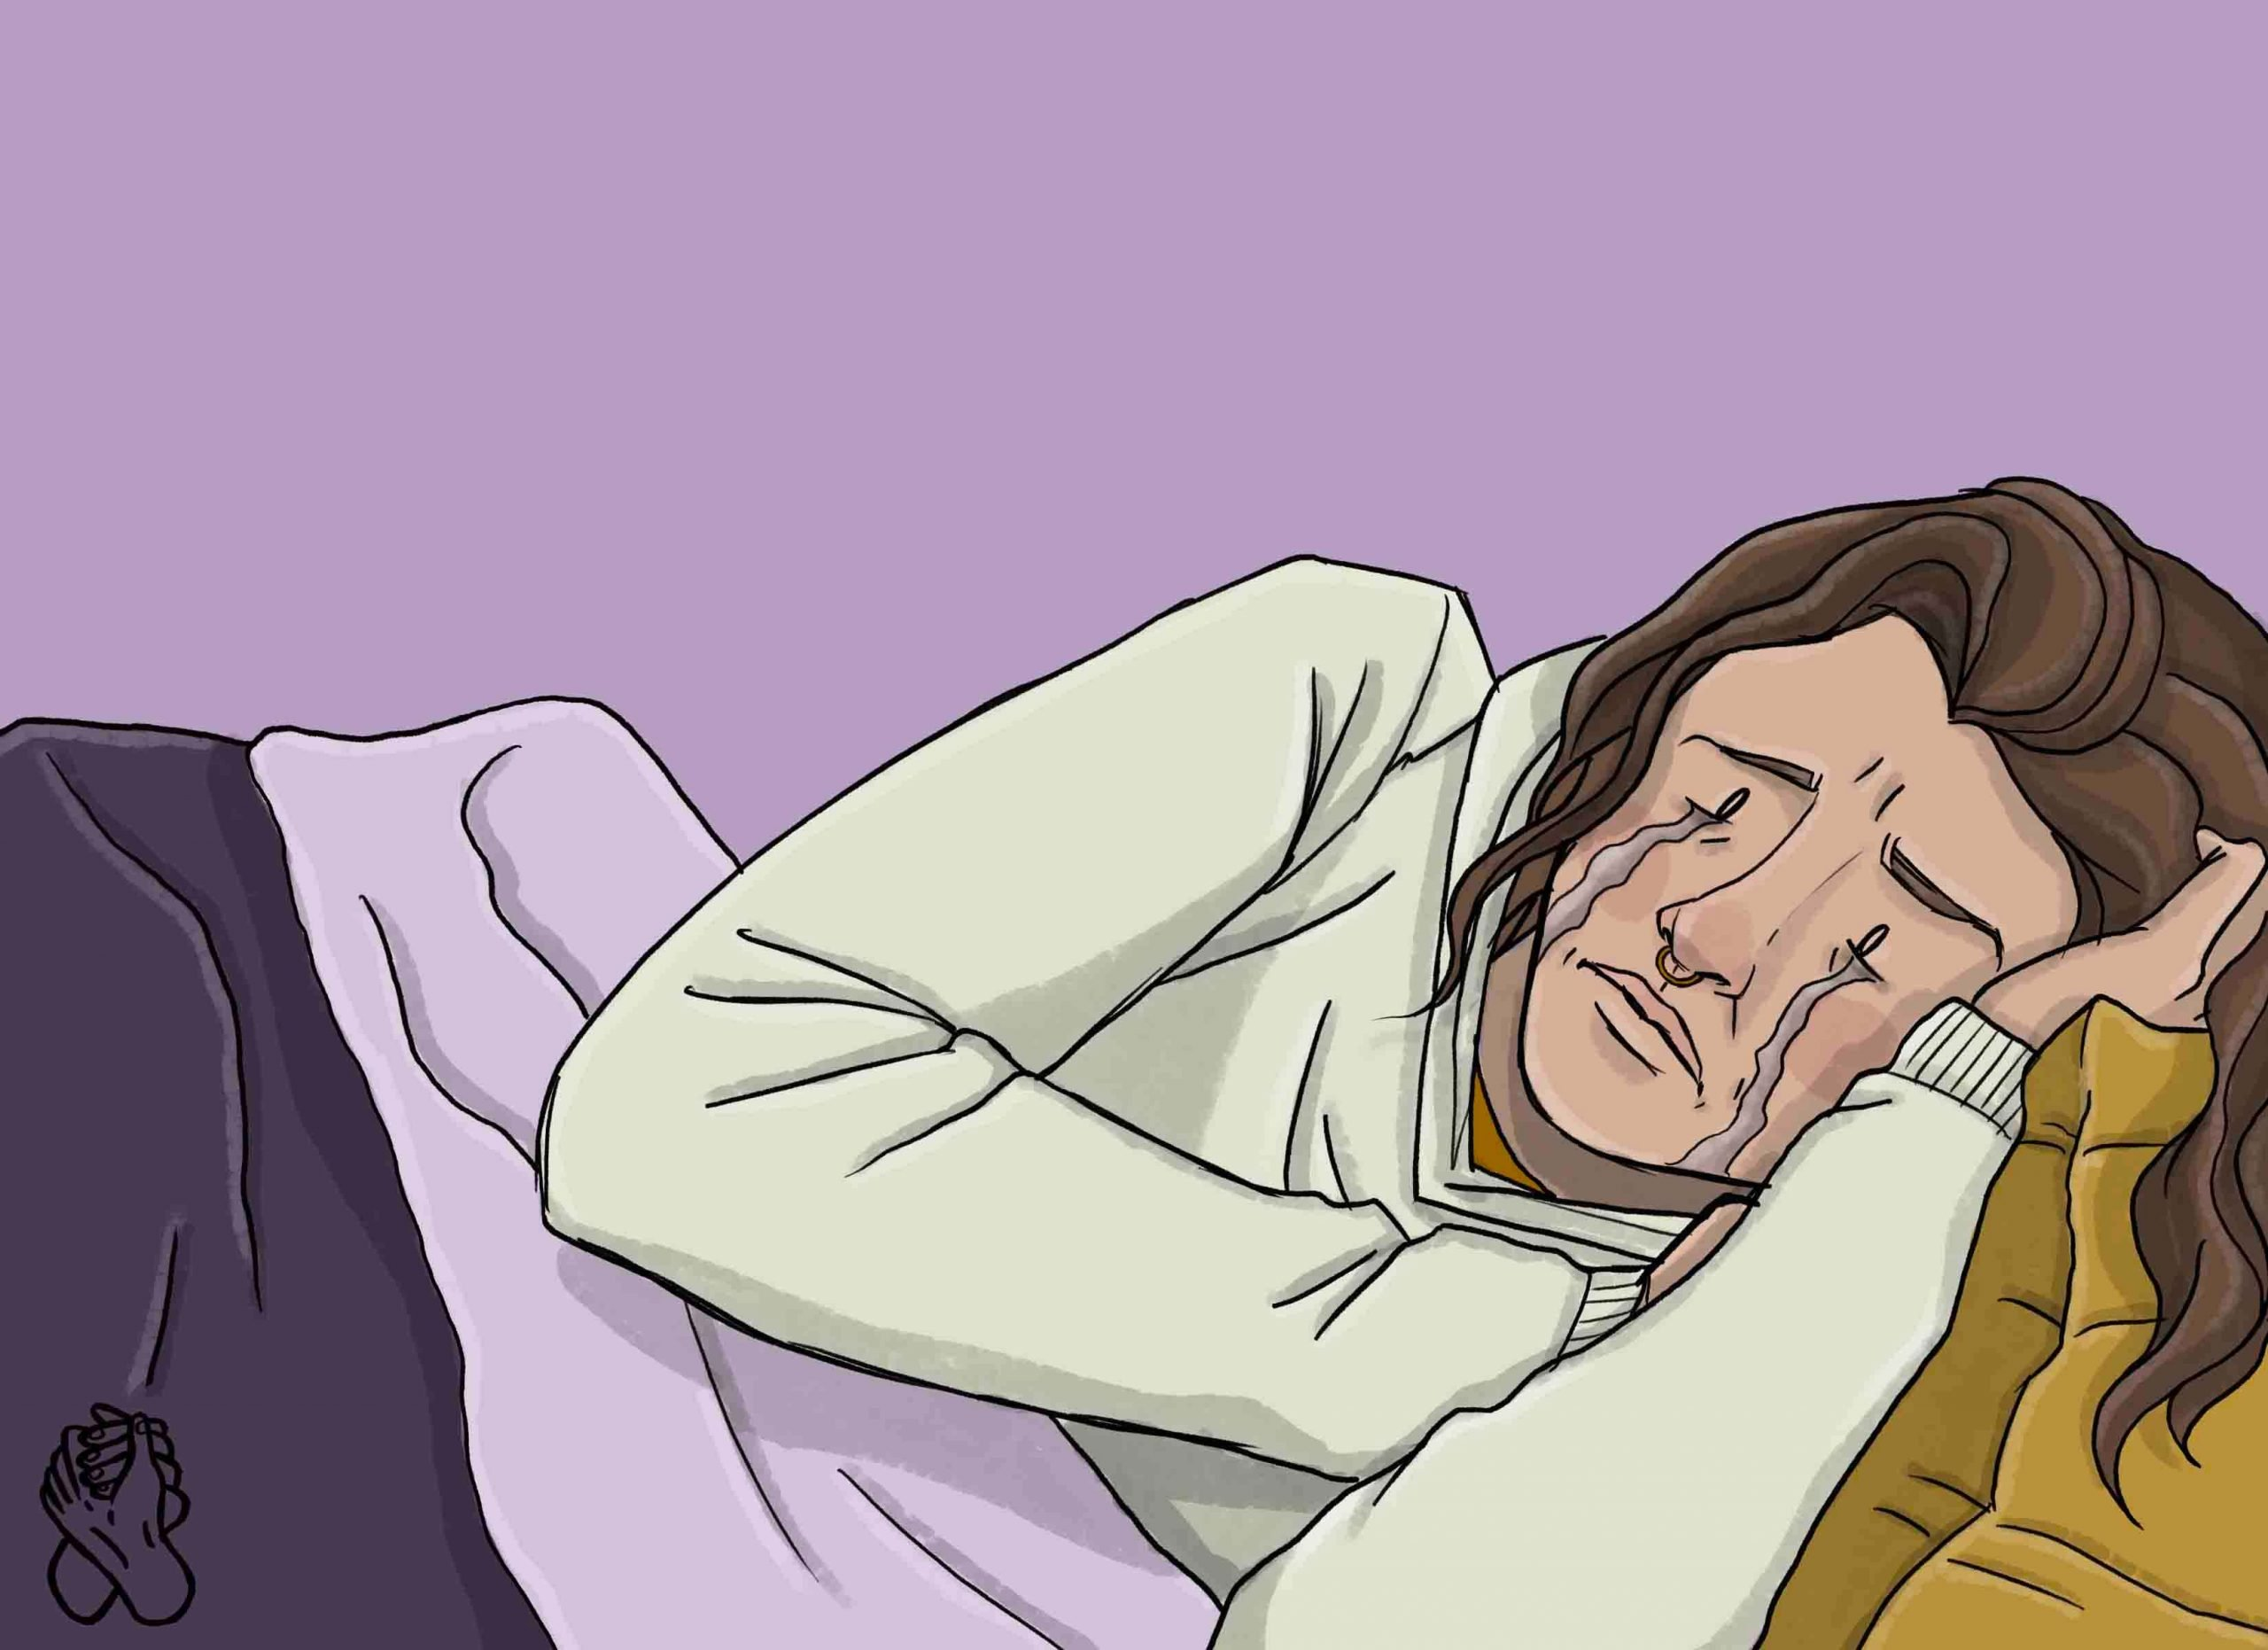 this is a drawing of a girl crying in bed with depression